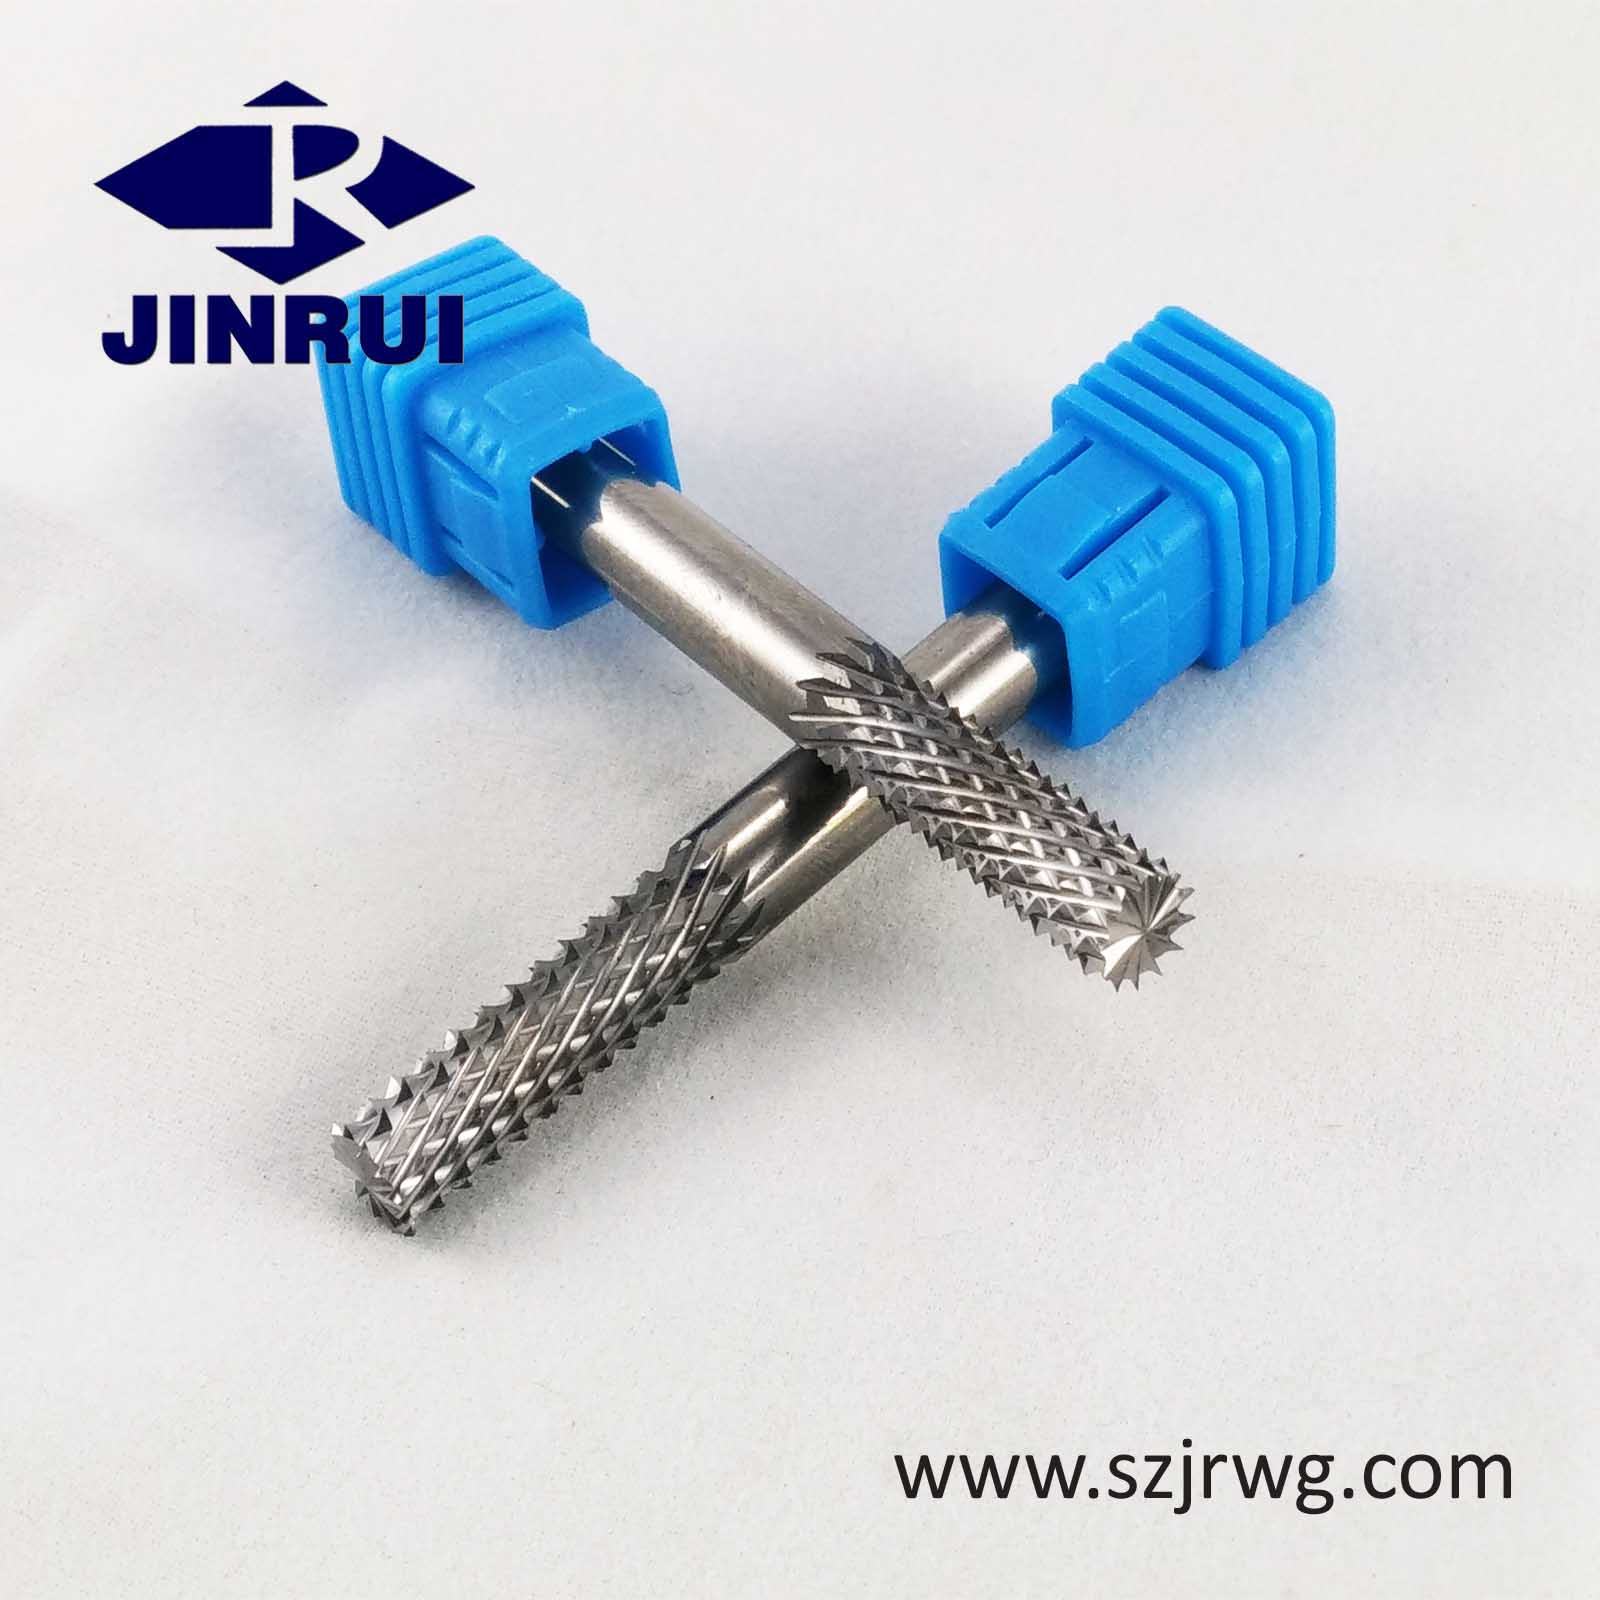 PCB CNC Router Bit; 3mm-10mm Solid Carbide End Mill; Engraving Flat End Router End Mill